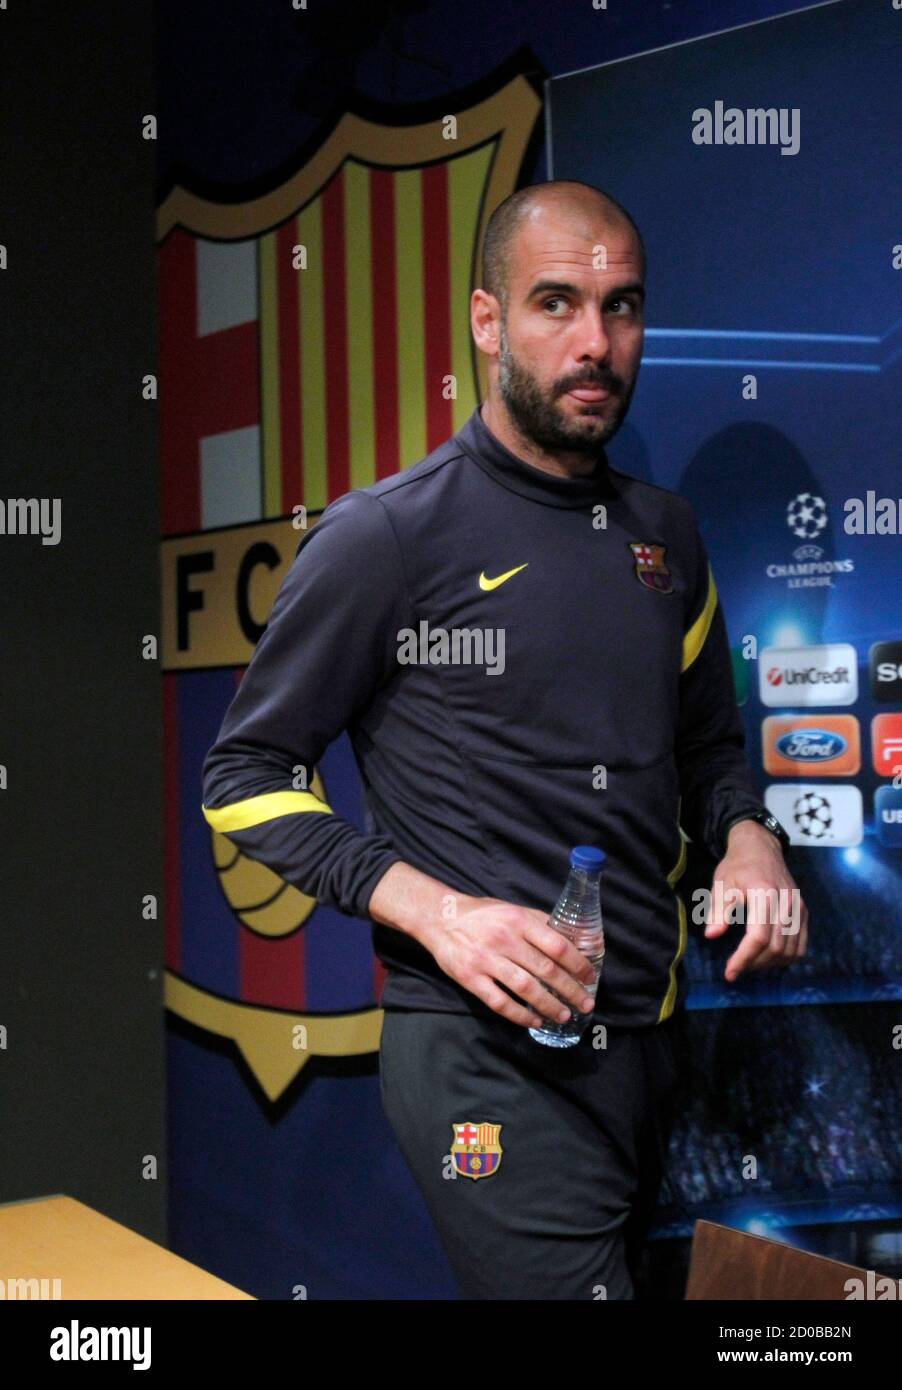 Barcelona's coach Pep Guardiola arrives for a news conference at Camp Nou  stadium in Barcelona, April 2, 2012. Barcelona will play against AC Milan  in their Champions League soccer match second leg